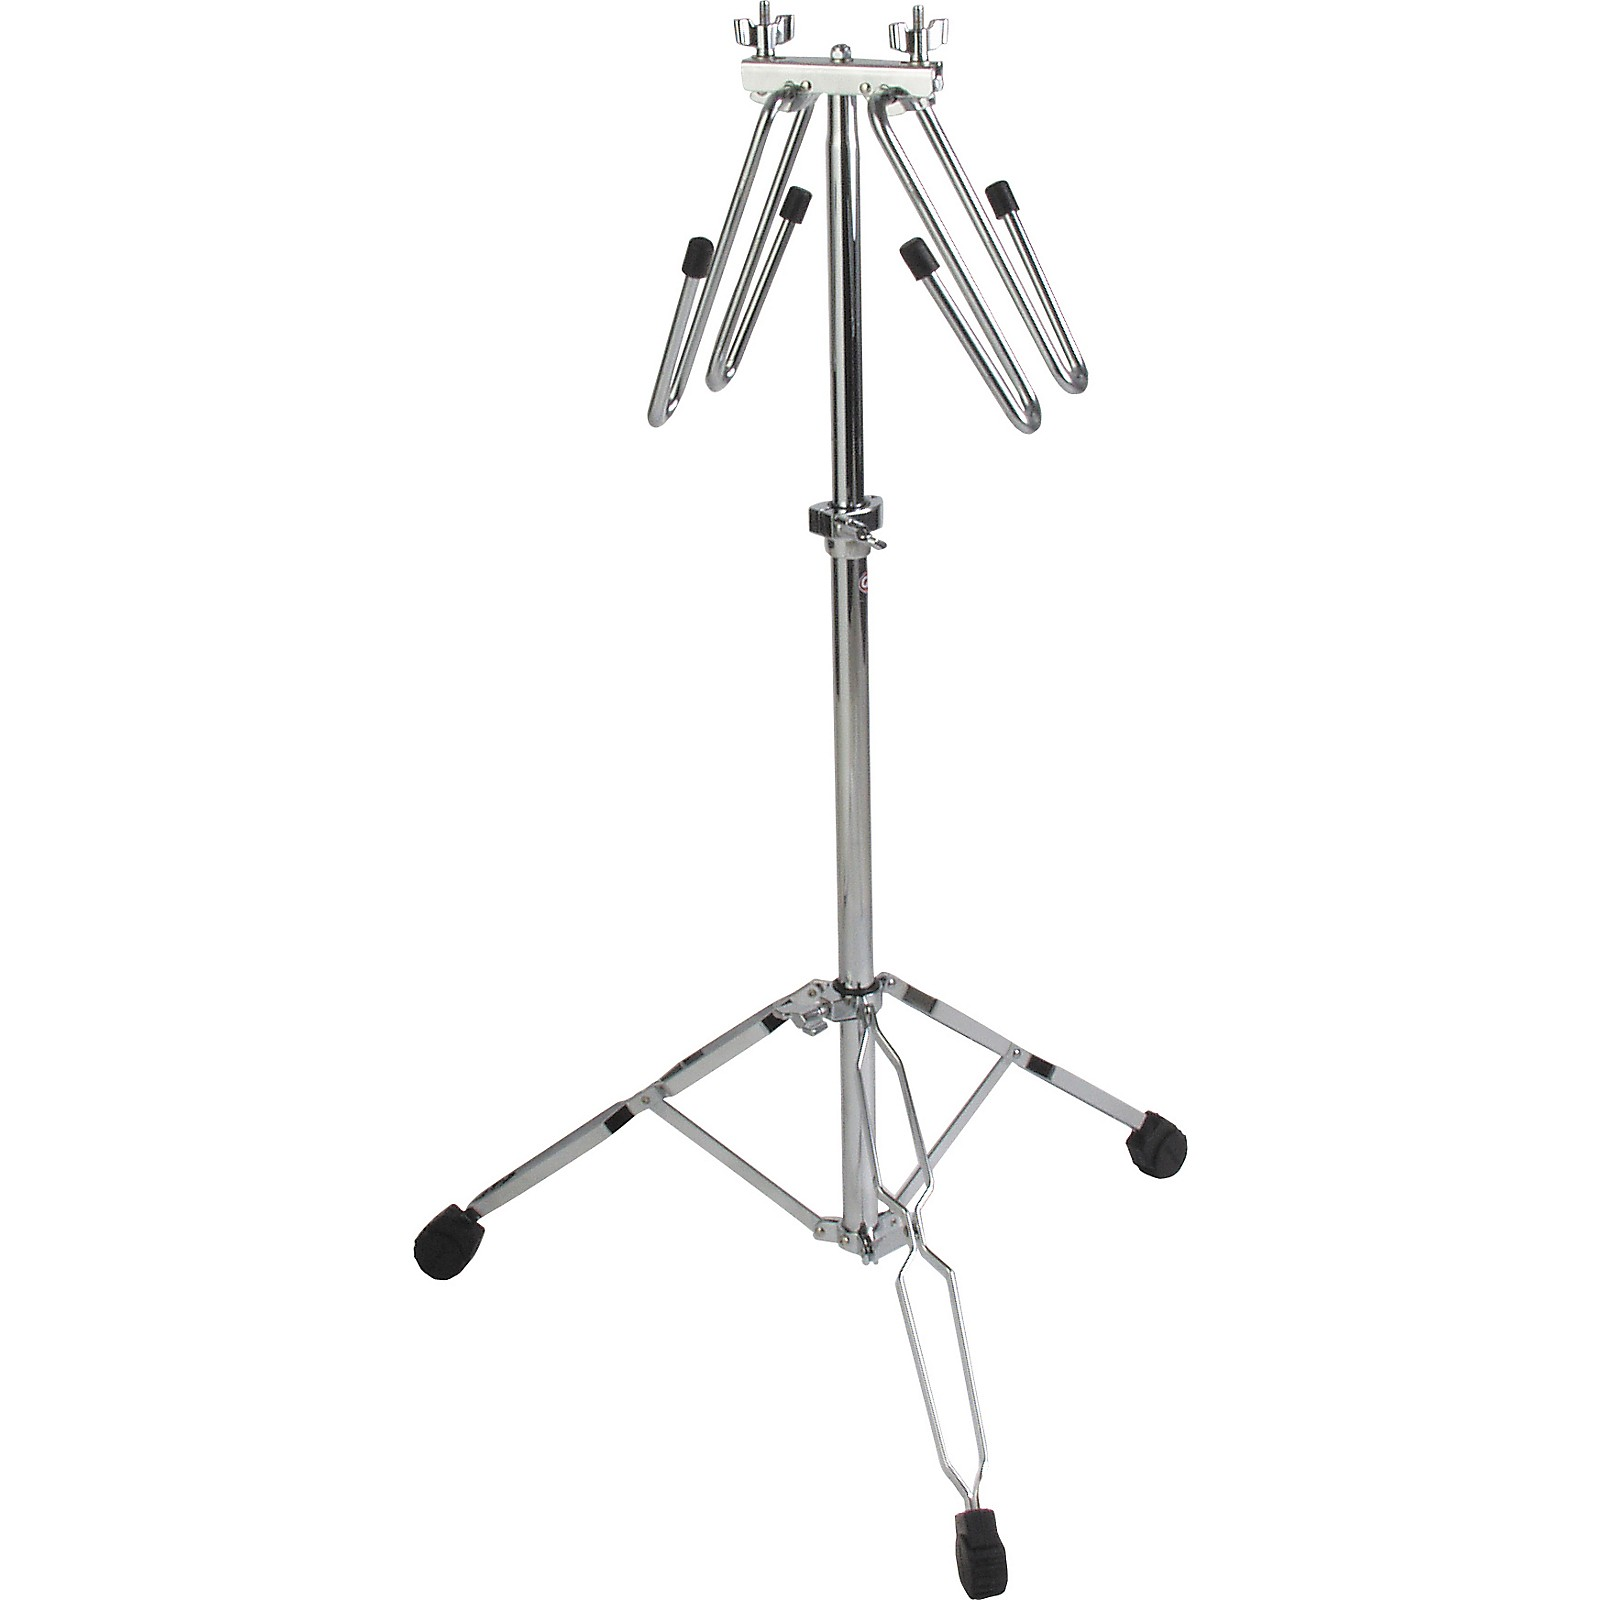 Open Box Gibraltar Concert Cymbal Cradle Stand